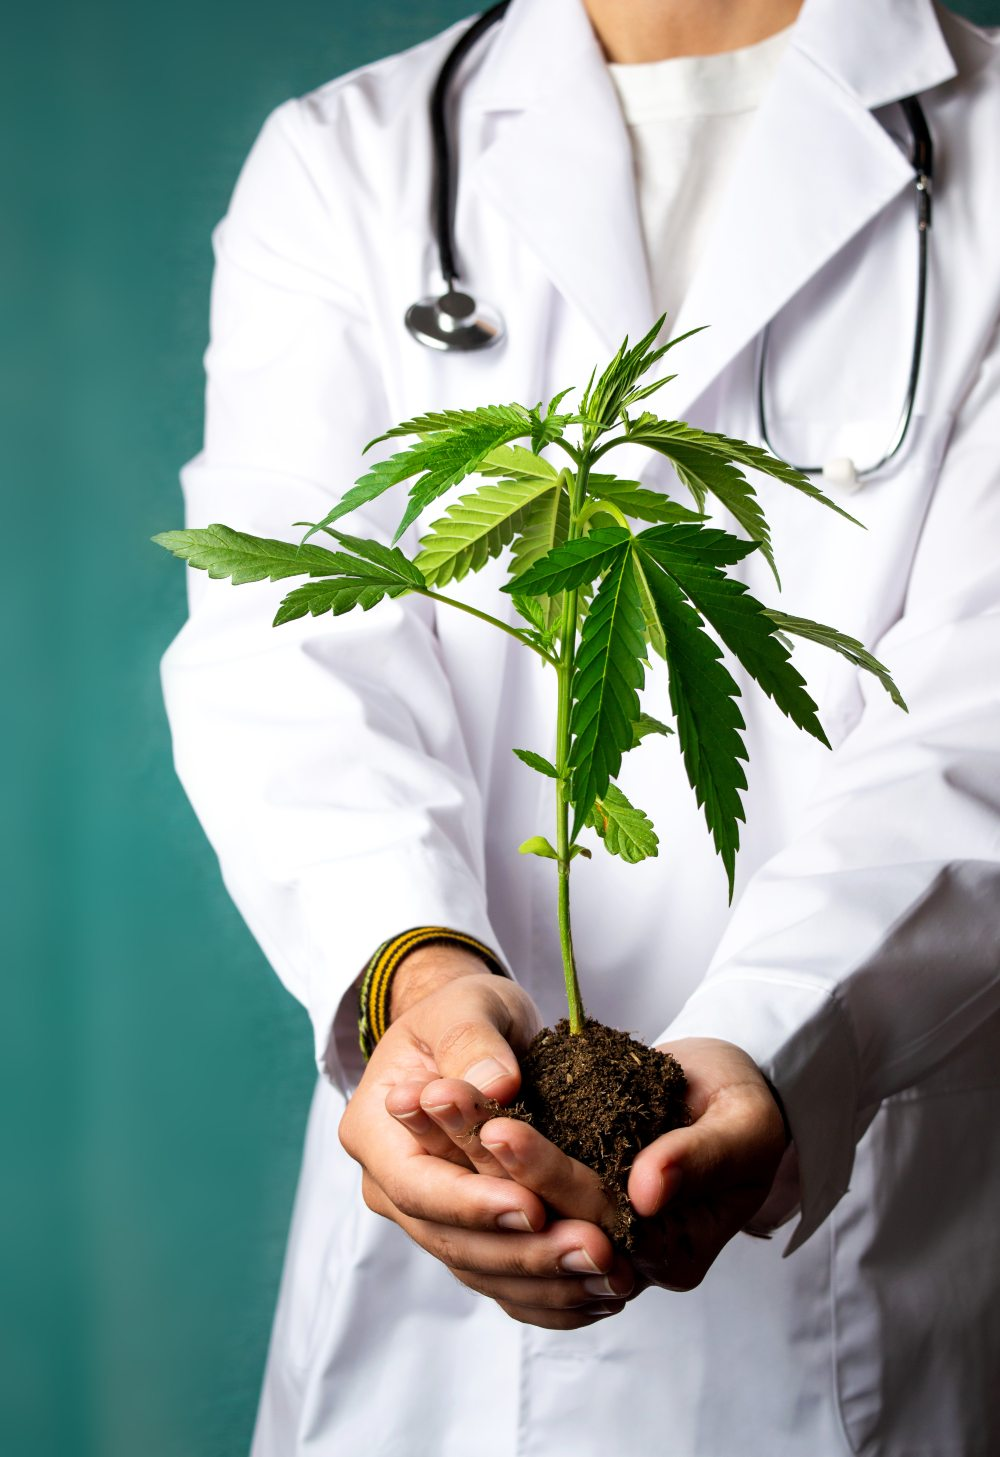 Doctor holding cannabis plant